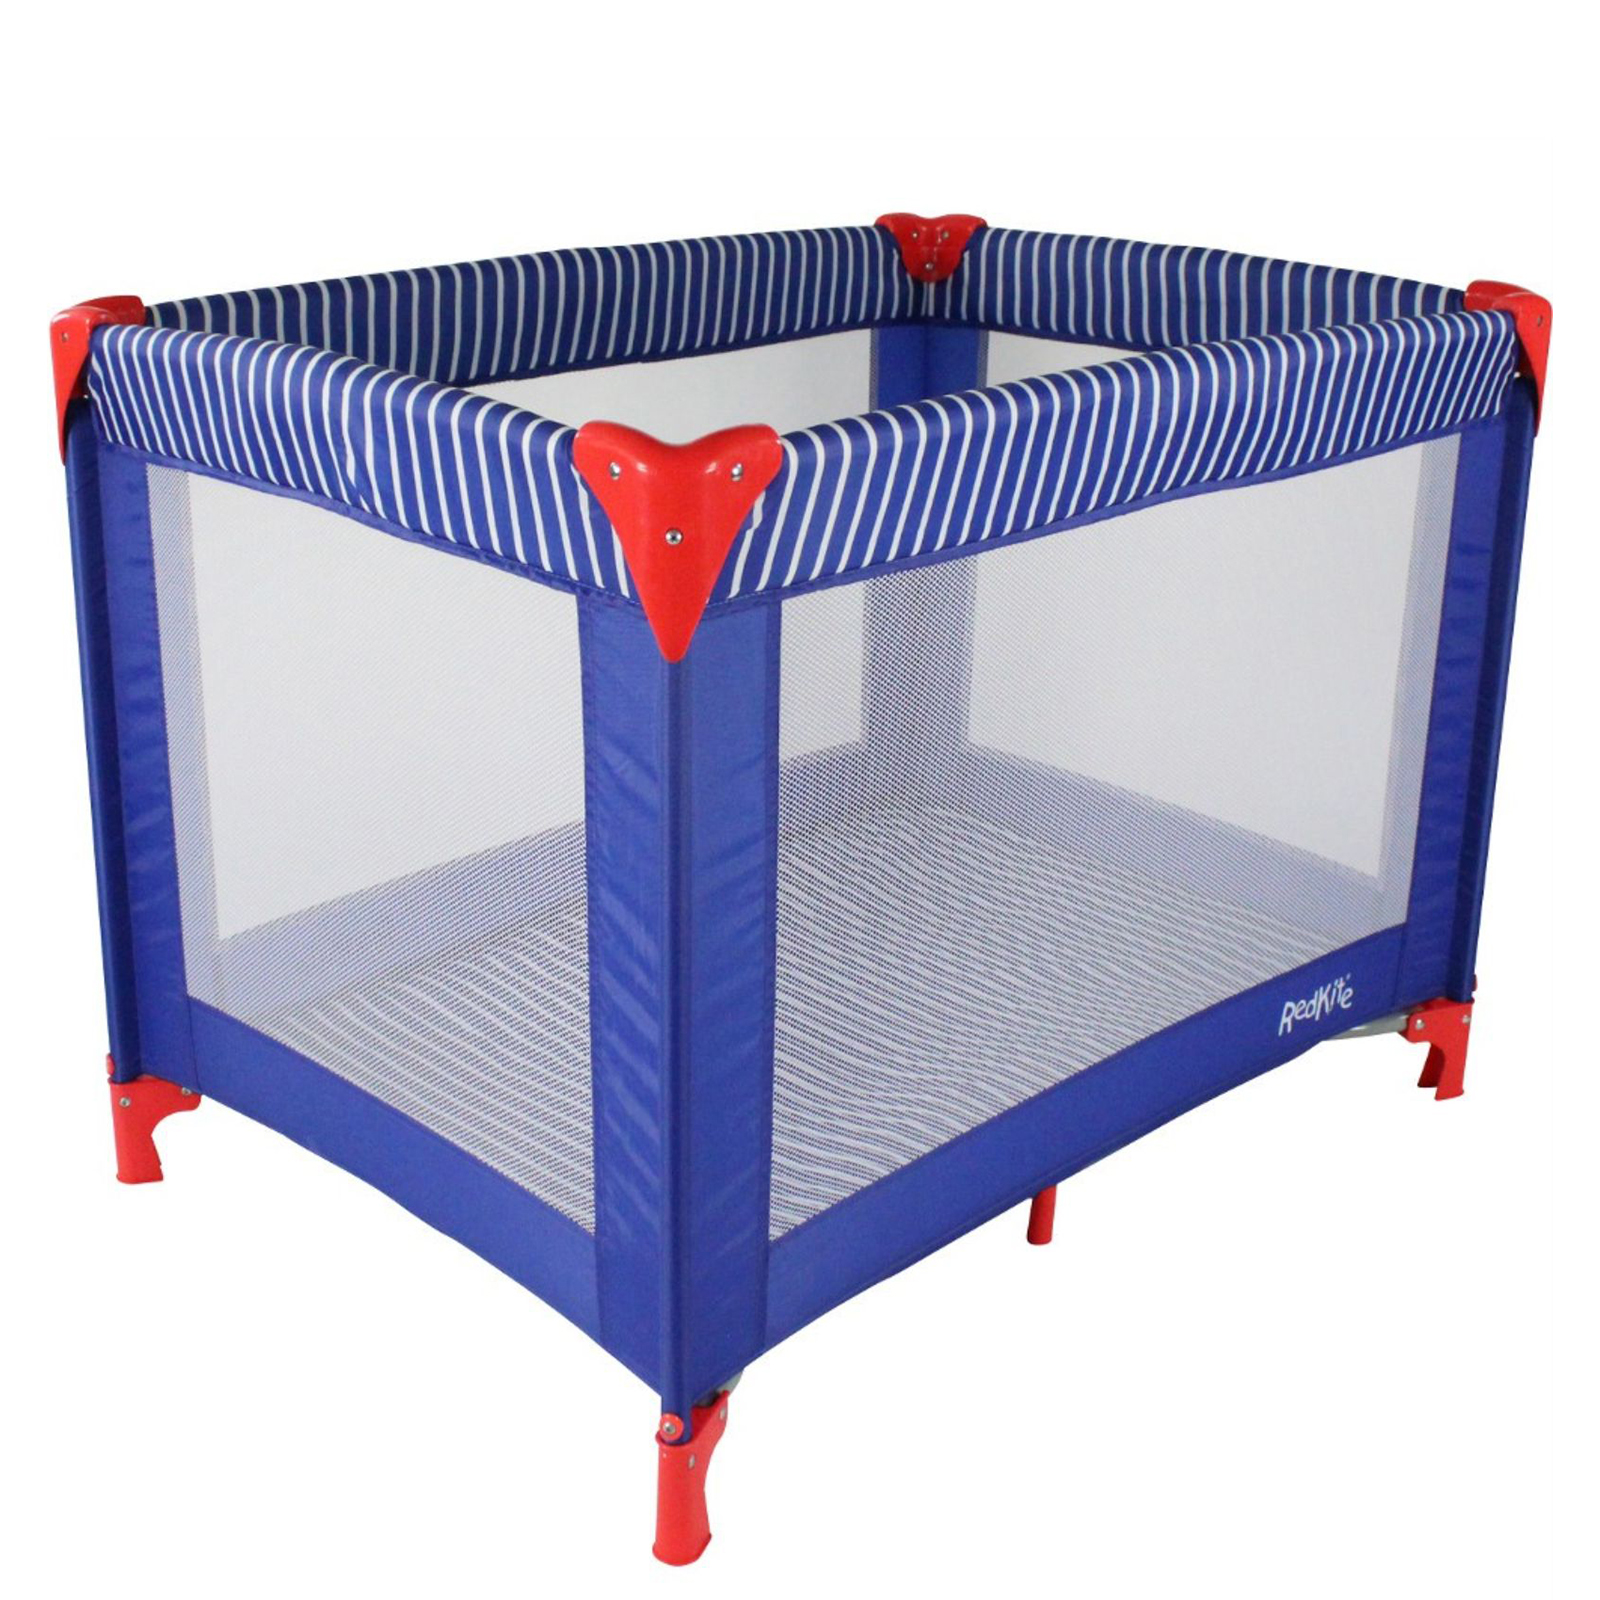 Cot Dimensions Red Kite Sleeptight Travel Cot Mattress Dimensions